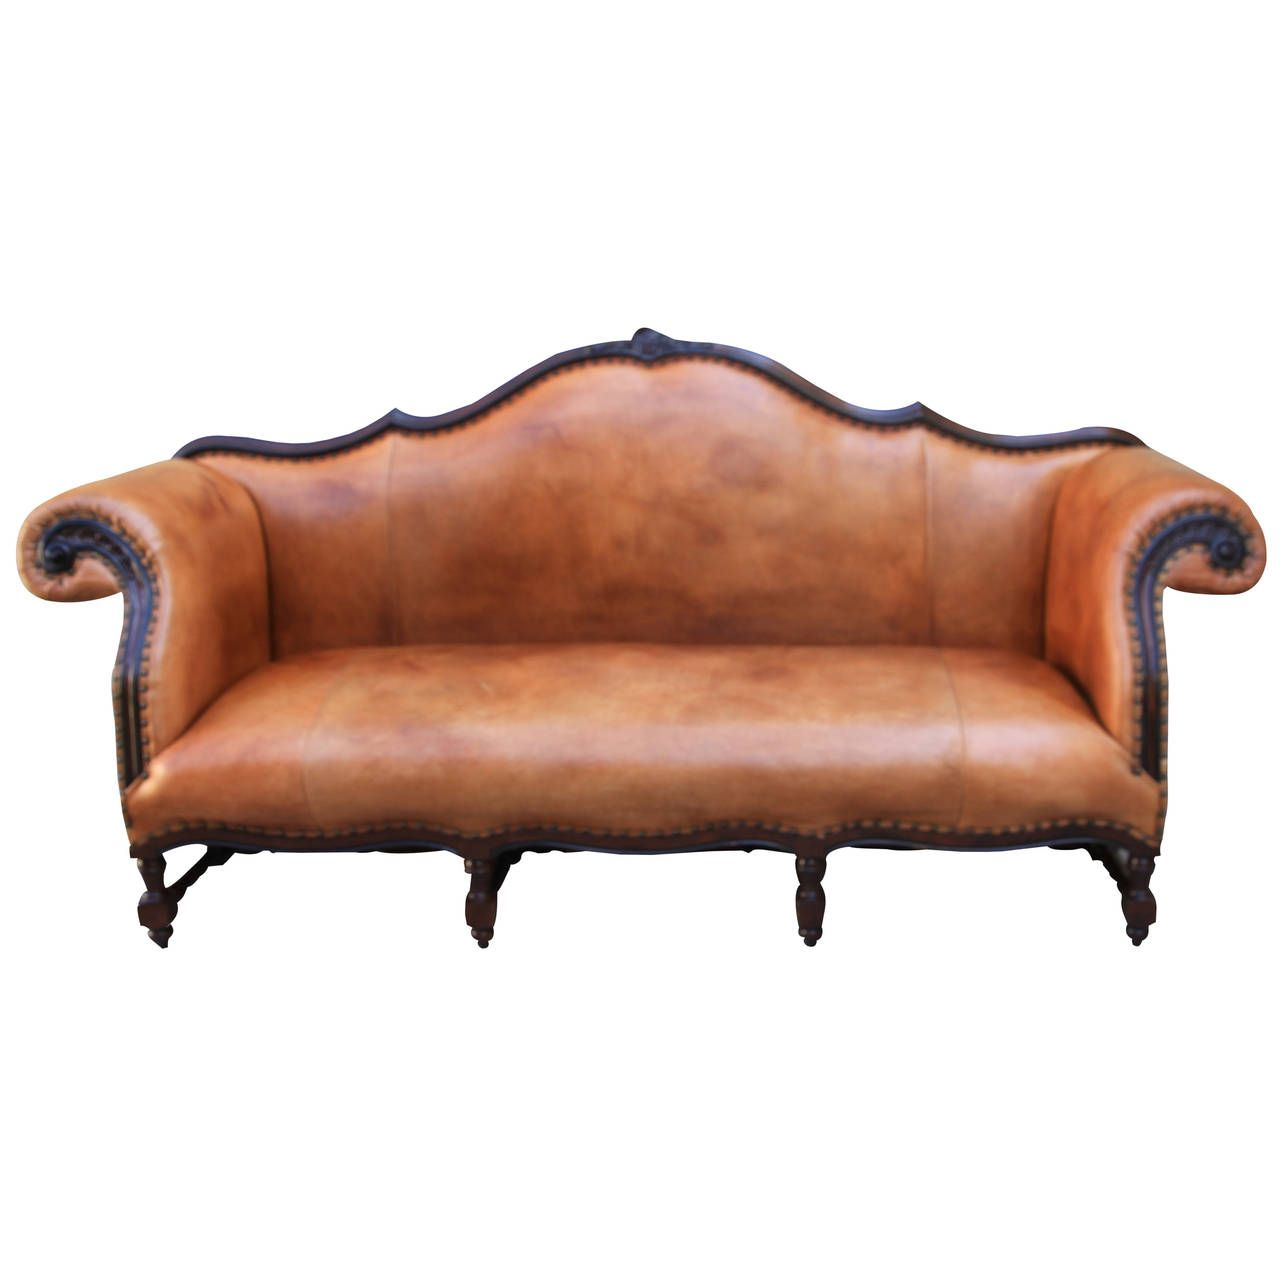 Ralph Lauren Leather Upholstered Sofa From A Unique Collection Of Antique And Modern Sofas At Https Www 1stdibs Furniture Seating